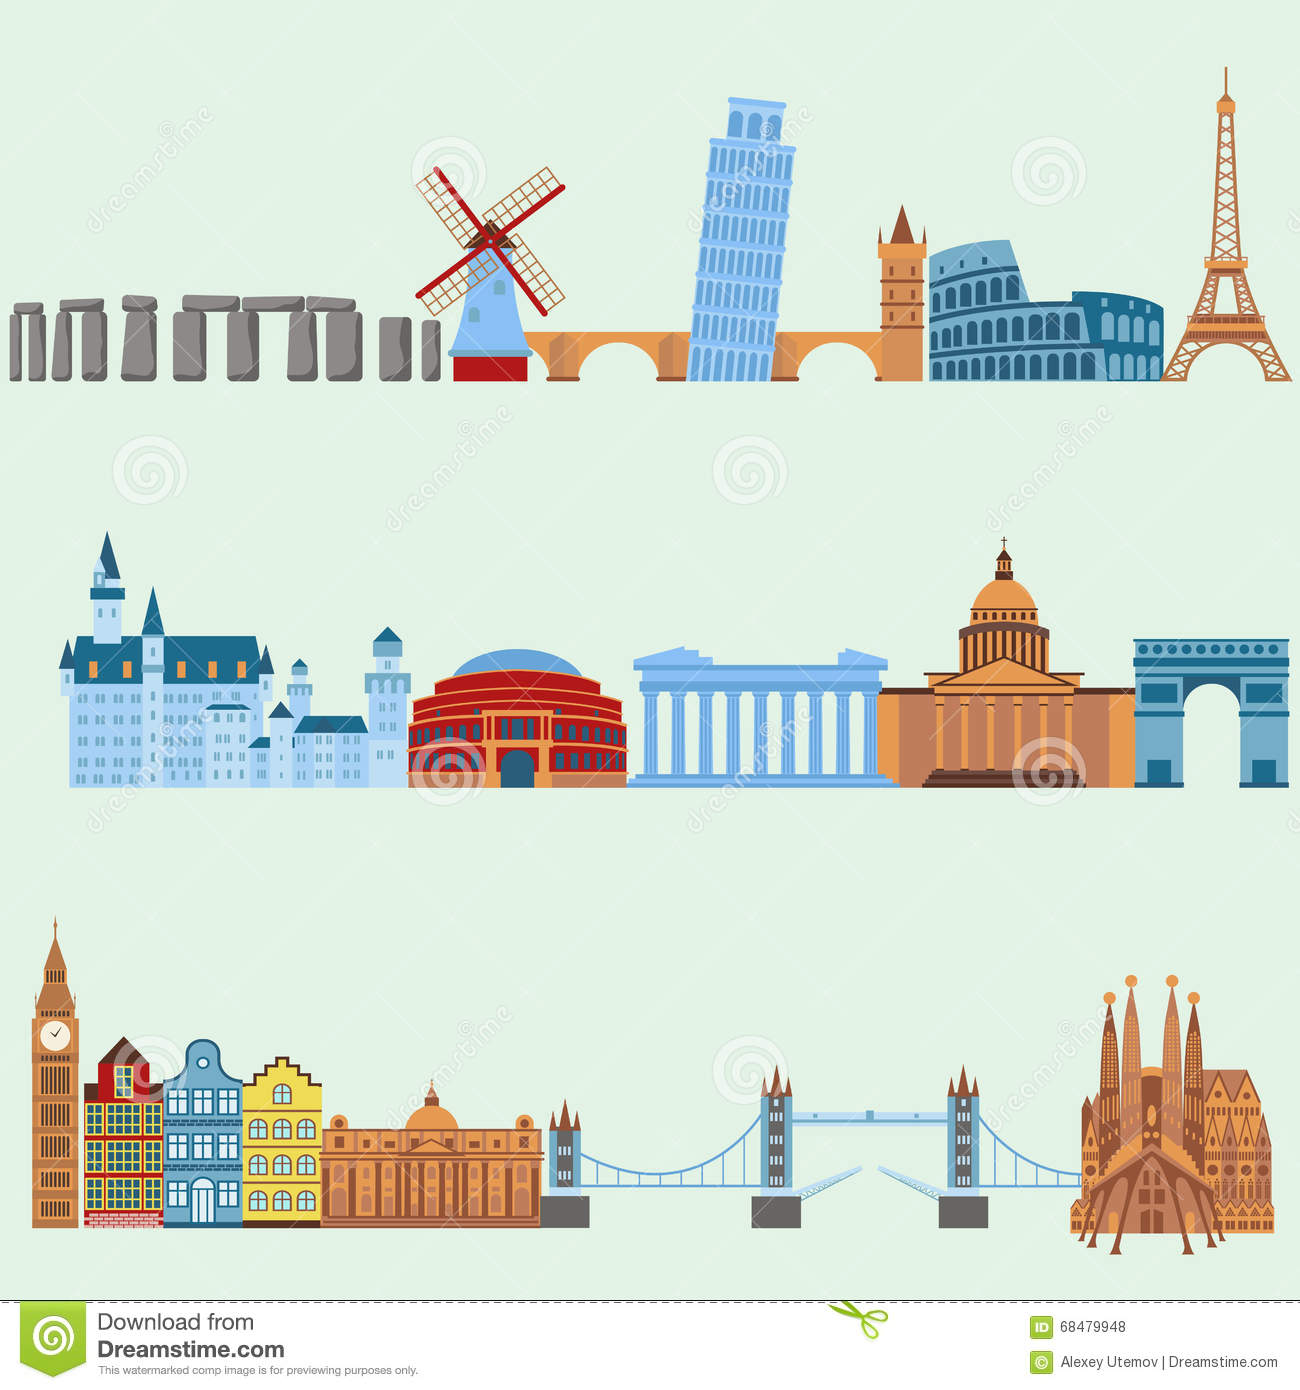 Travel Outdoor Euro Trip Vacation Travelling Concept Flat Design